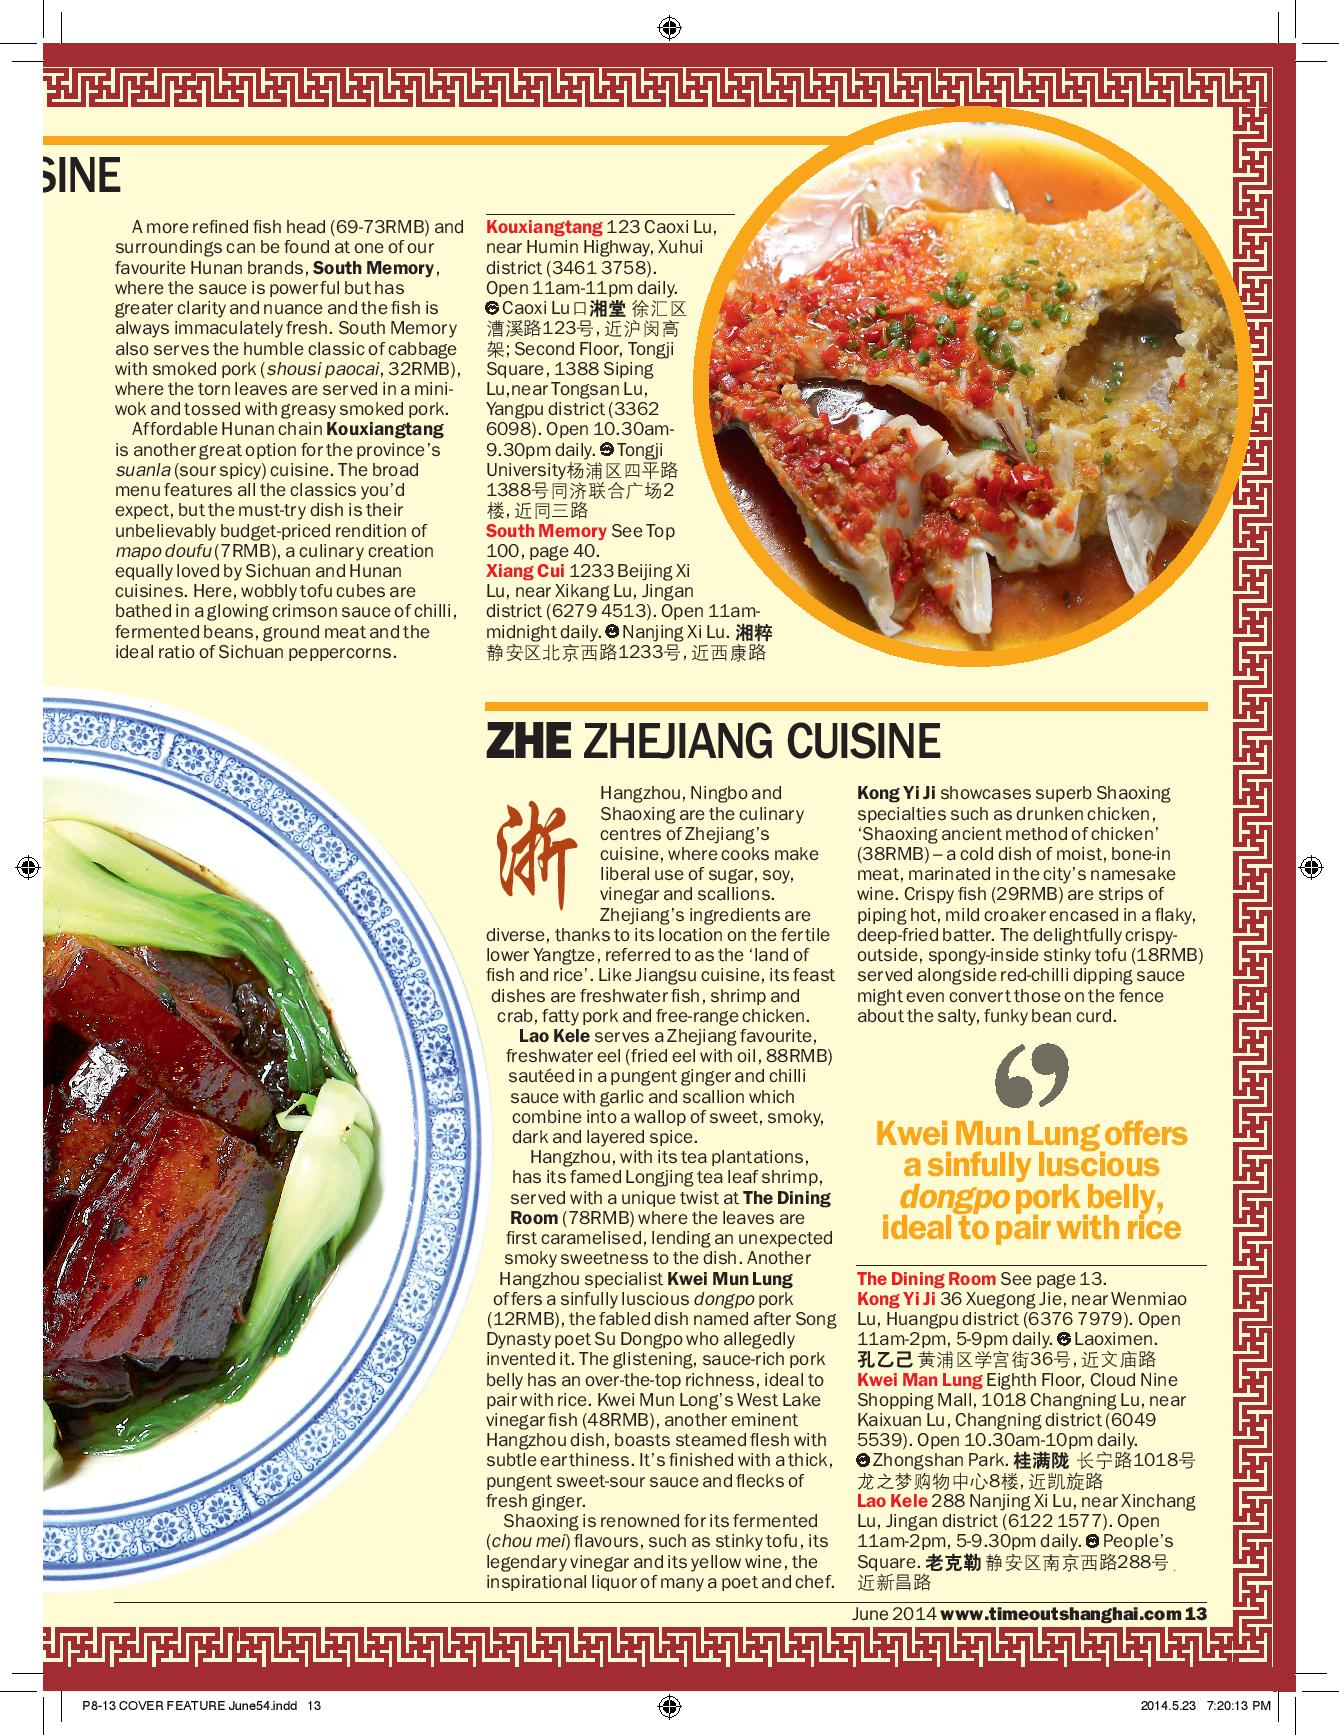 P8-13 COVER FEATURE Eight Great Cuisines June 2014-page-006.jpg